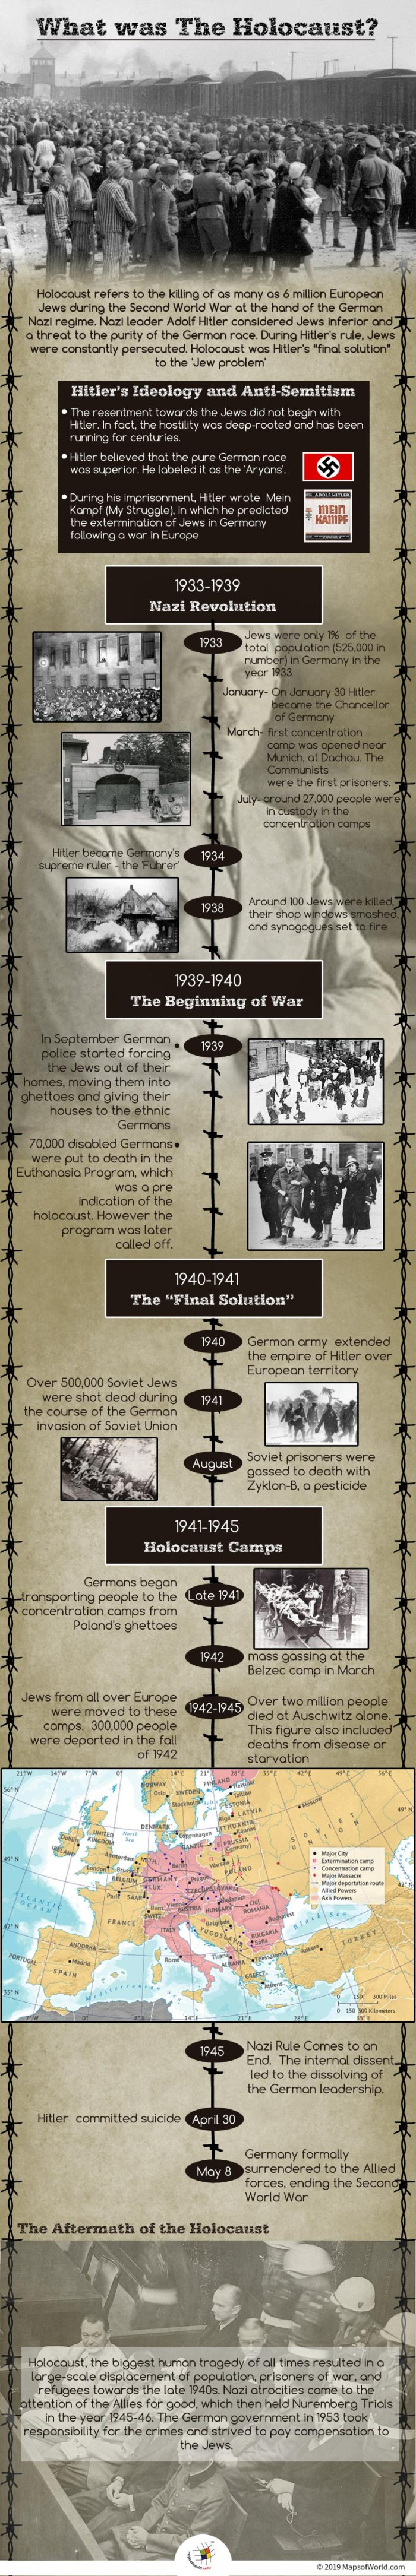 Infographic on The Holocaust